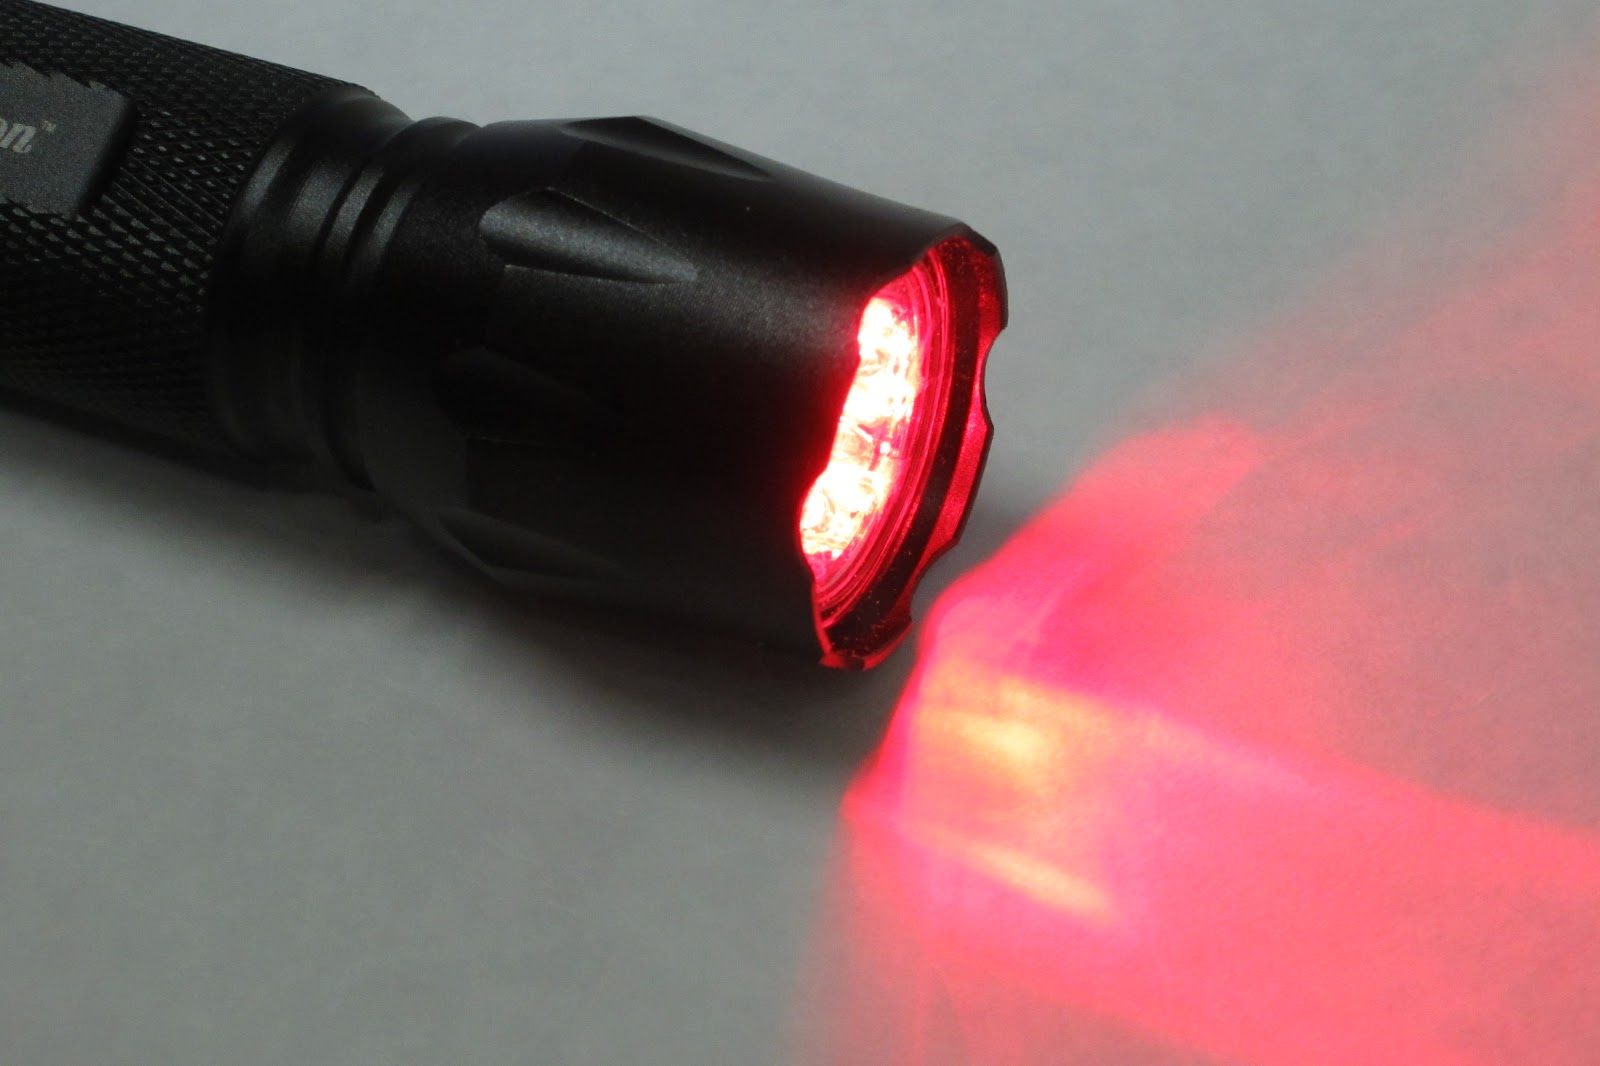 The unlucky hunter february 2012 the blood tracker light works as well as more expensive blood tracker lights it illuminates bright blood like that from a lung shot very well aloadofball Image collections